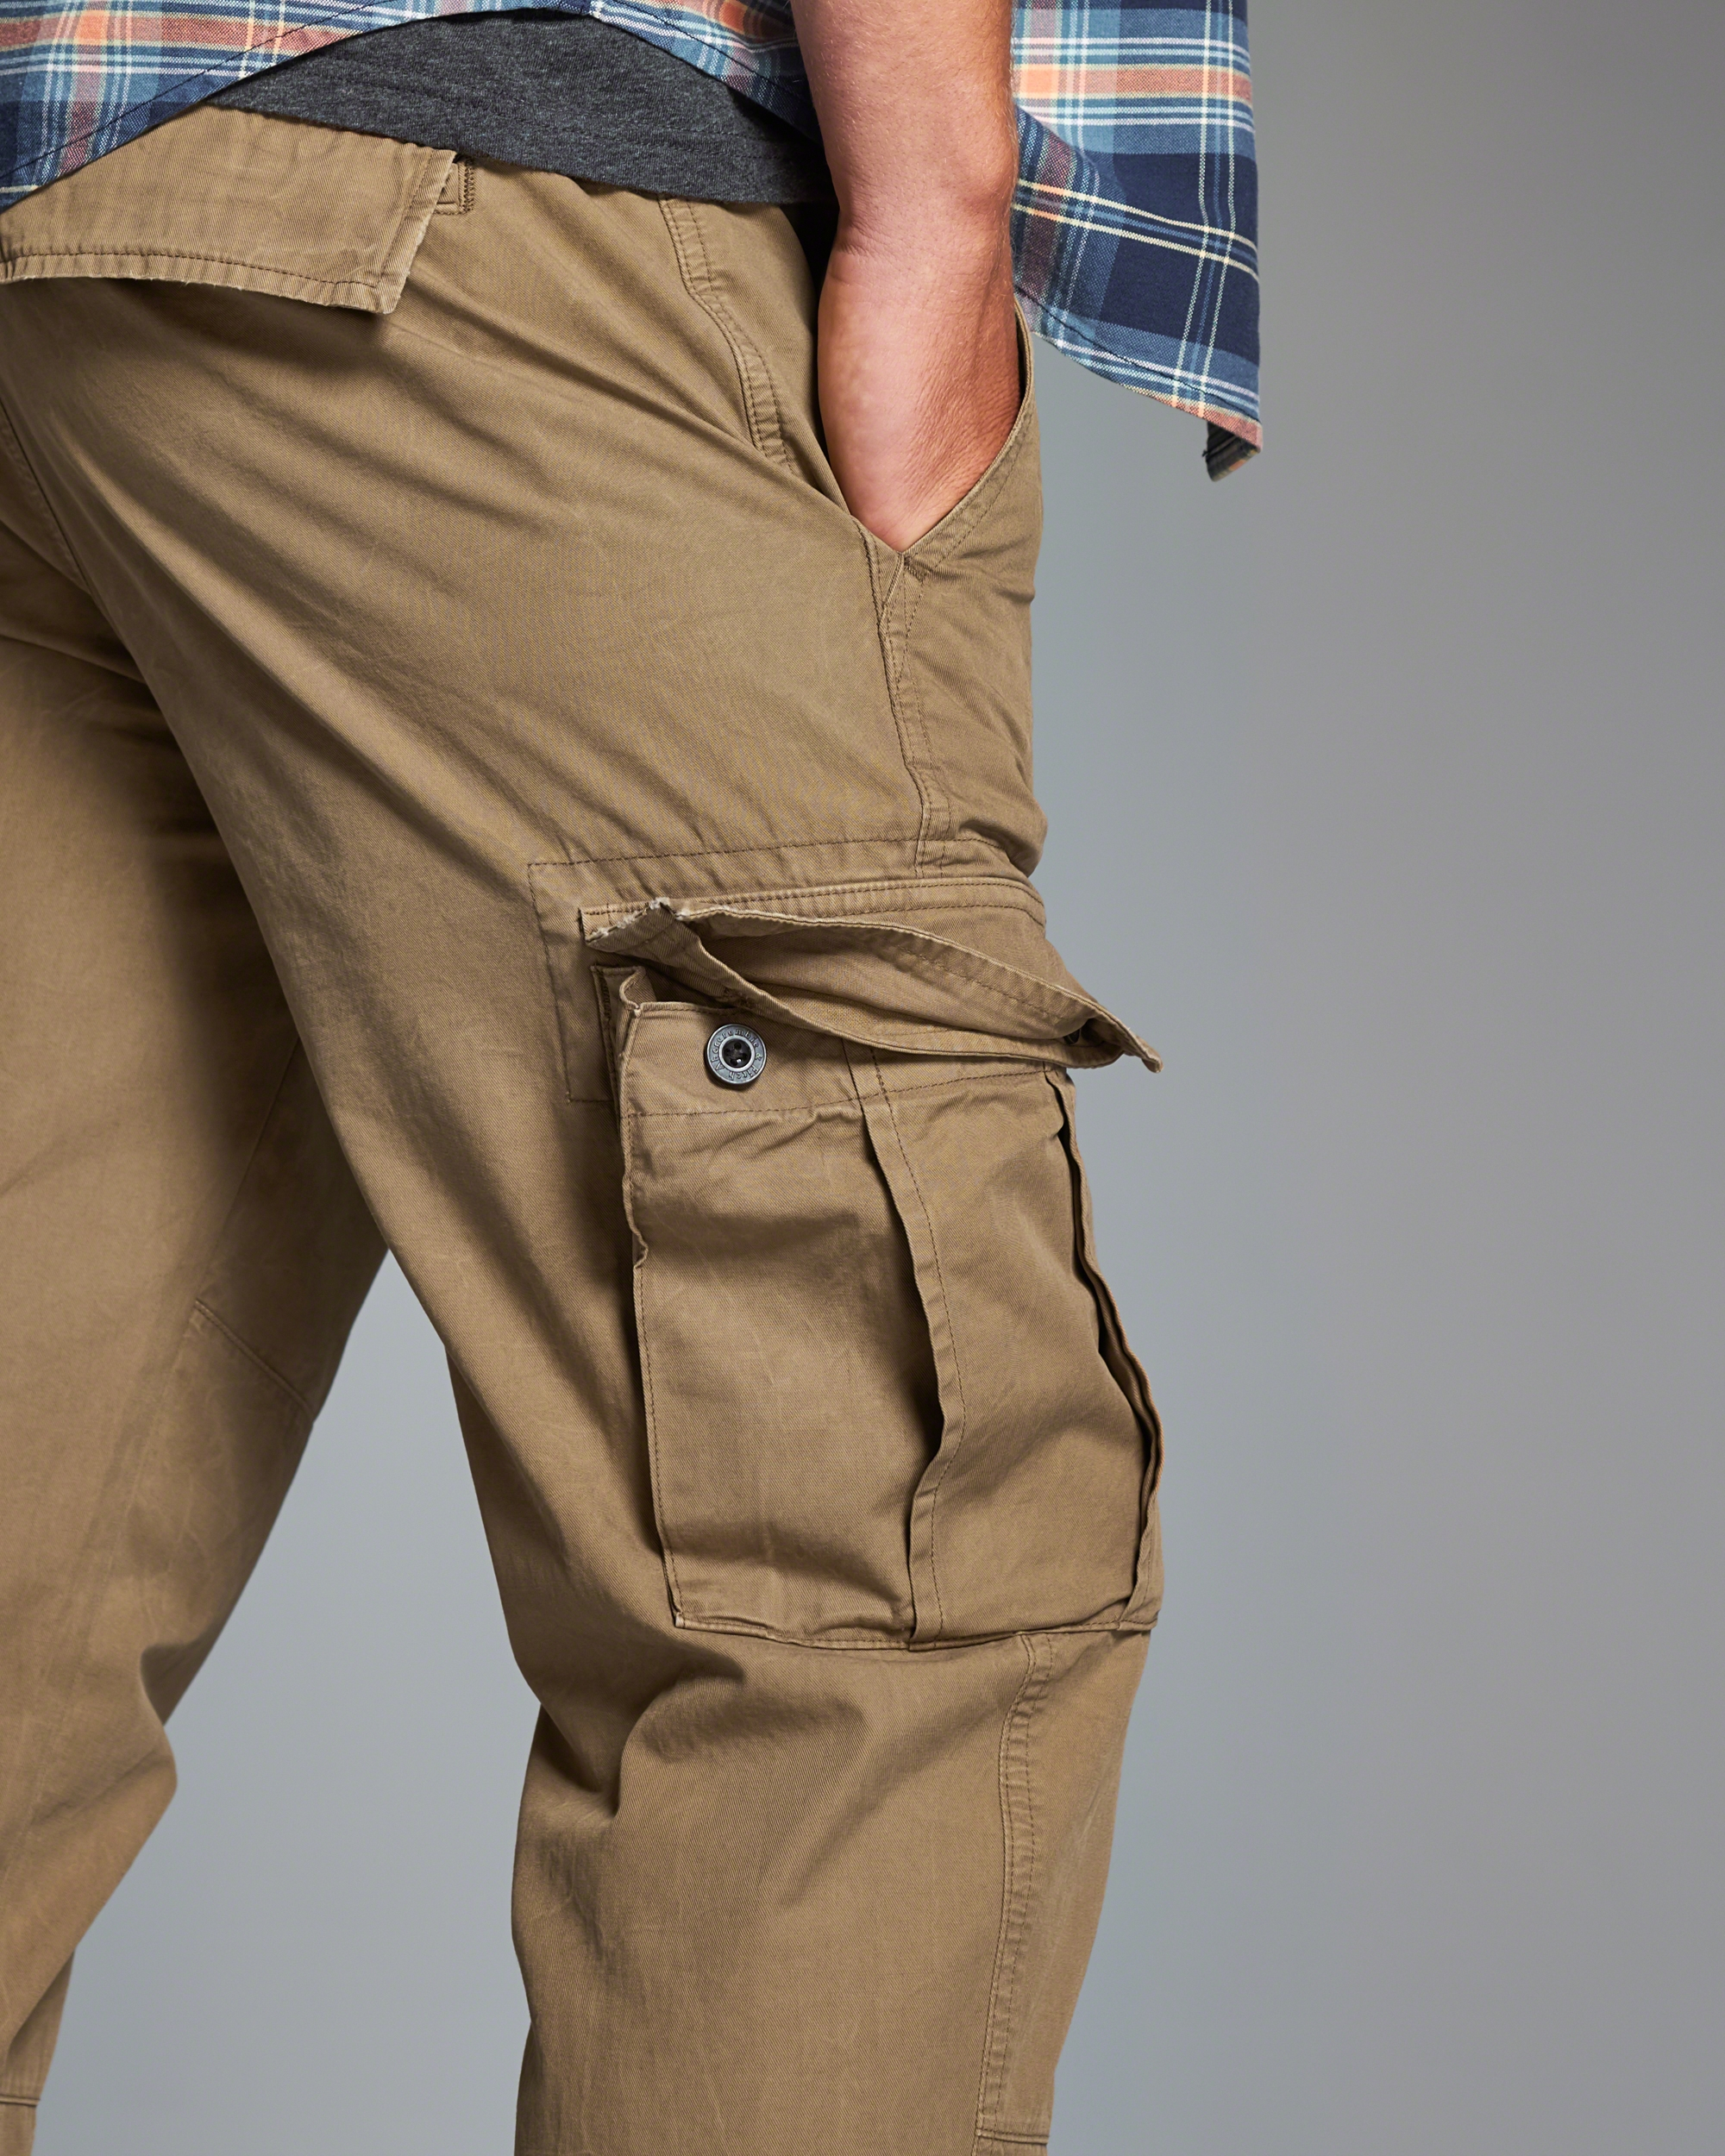 Abercrombie Fitch Accessories Abercrombie Fitch Womens: Abercrombie & Fitch Cargo Pants For Men